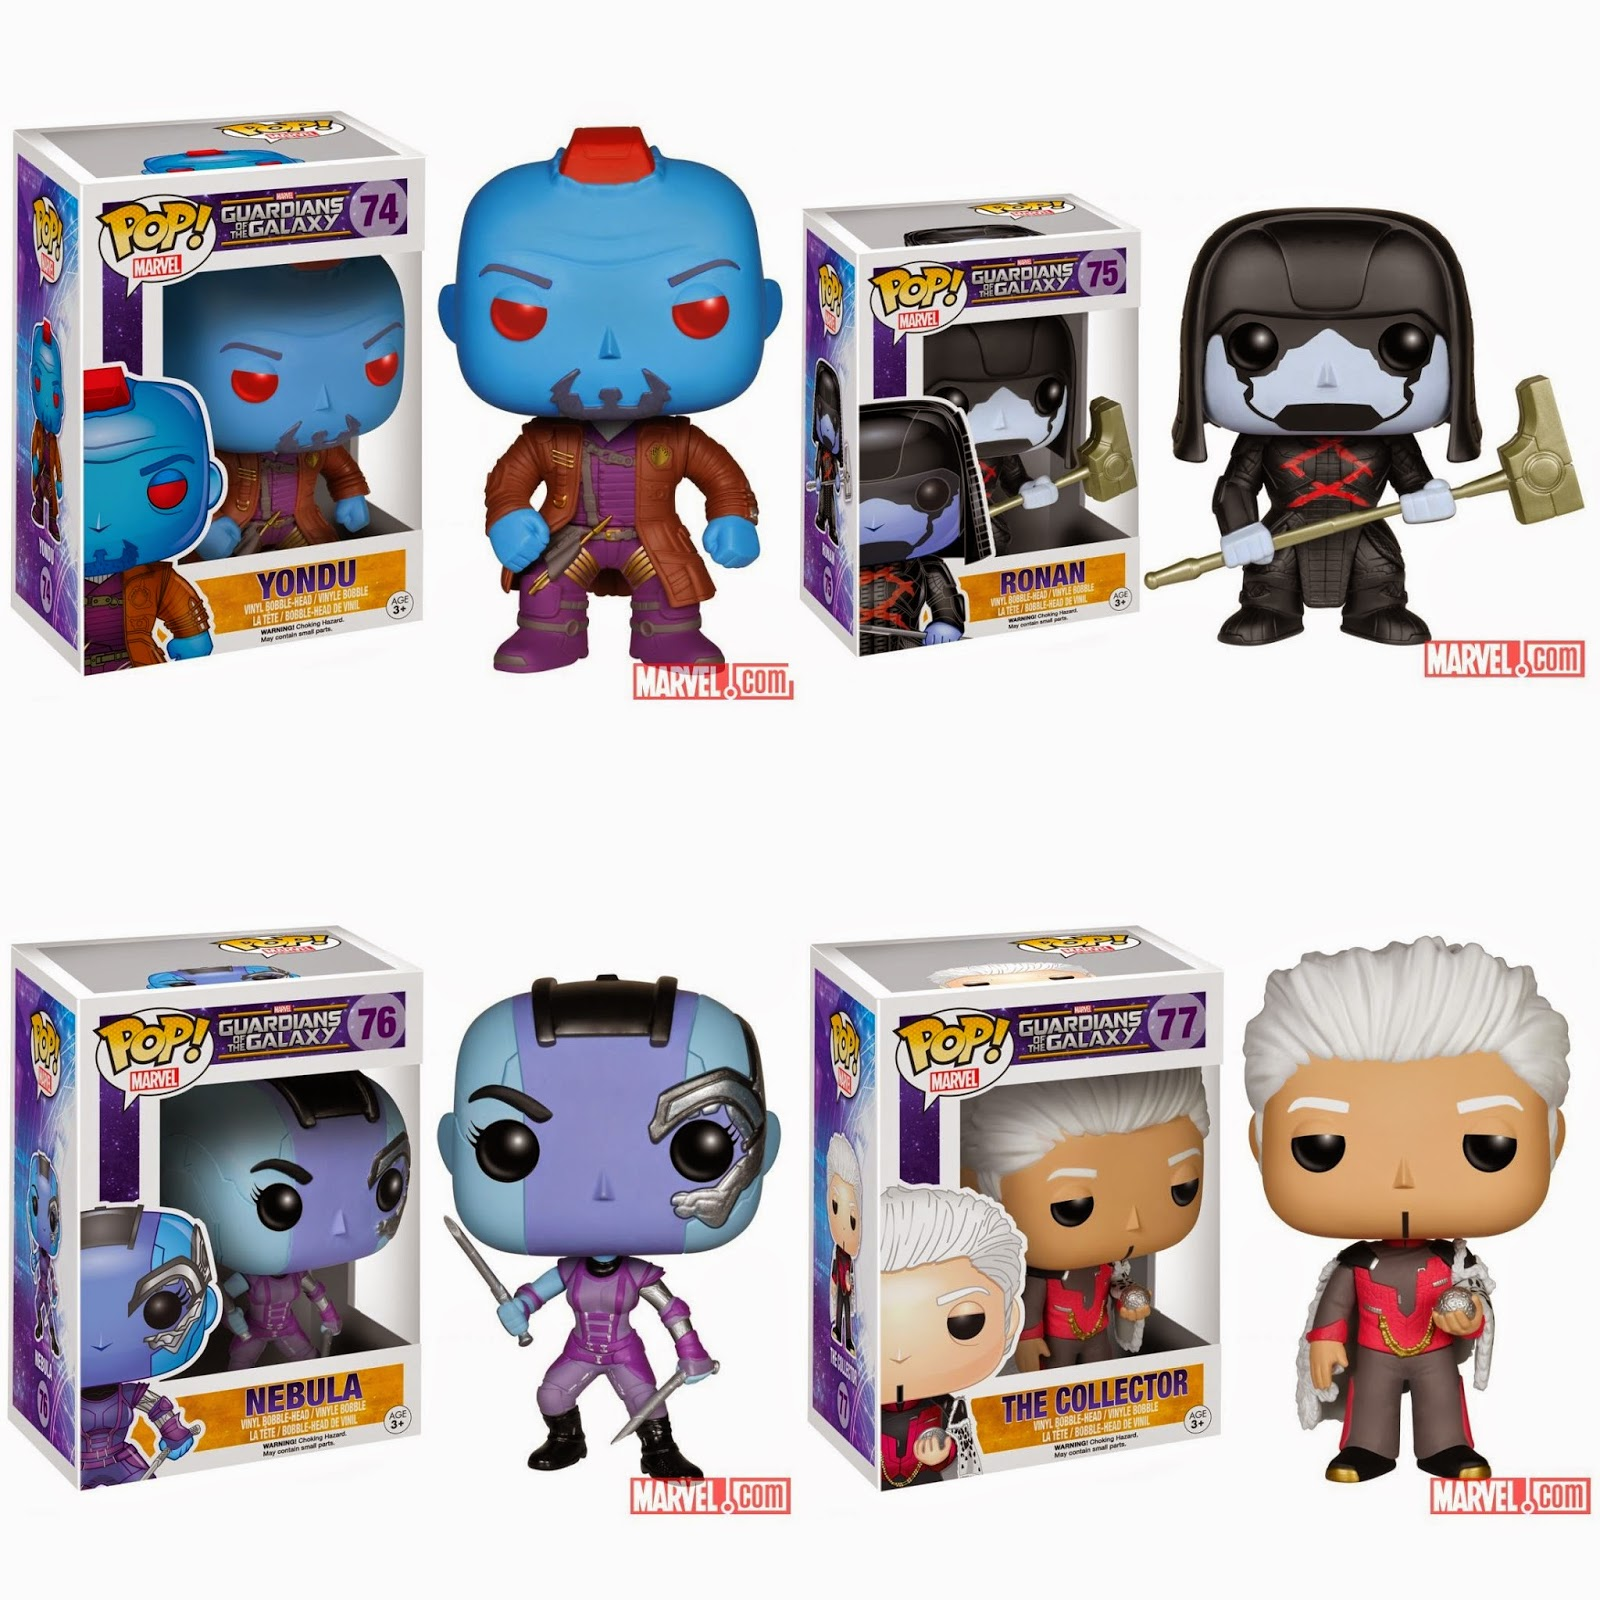 Guardians of the Galaxy Pop! Marvel Vinyl Figure Villains Series - Yondu, Ronan, Nebula & The Collector